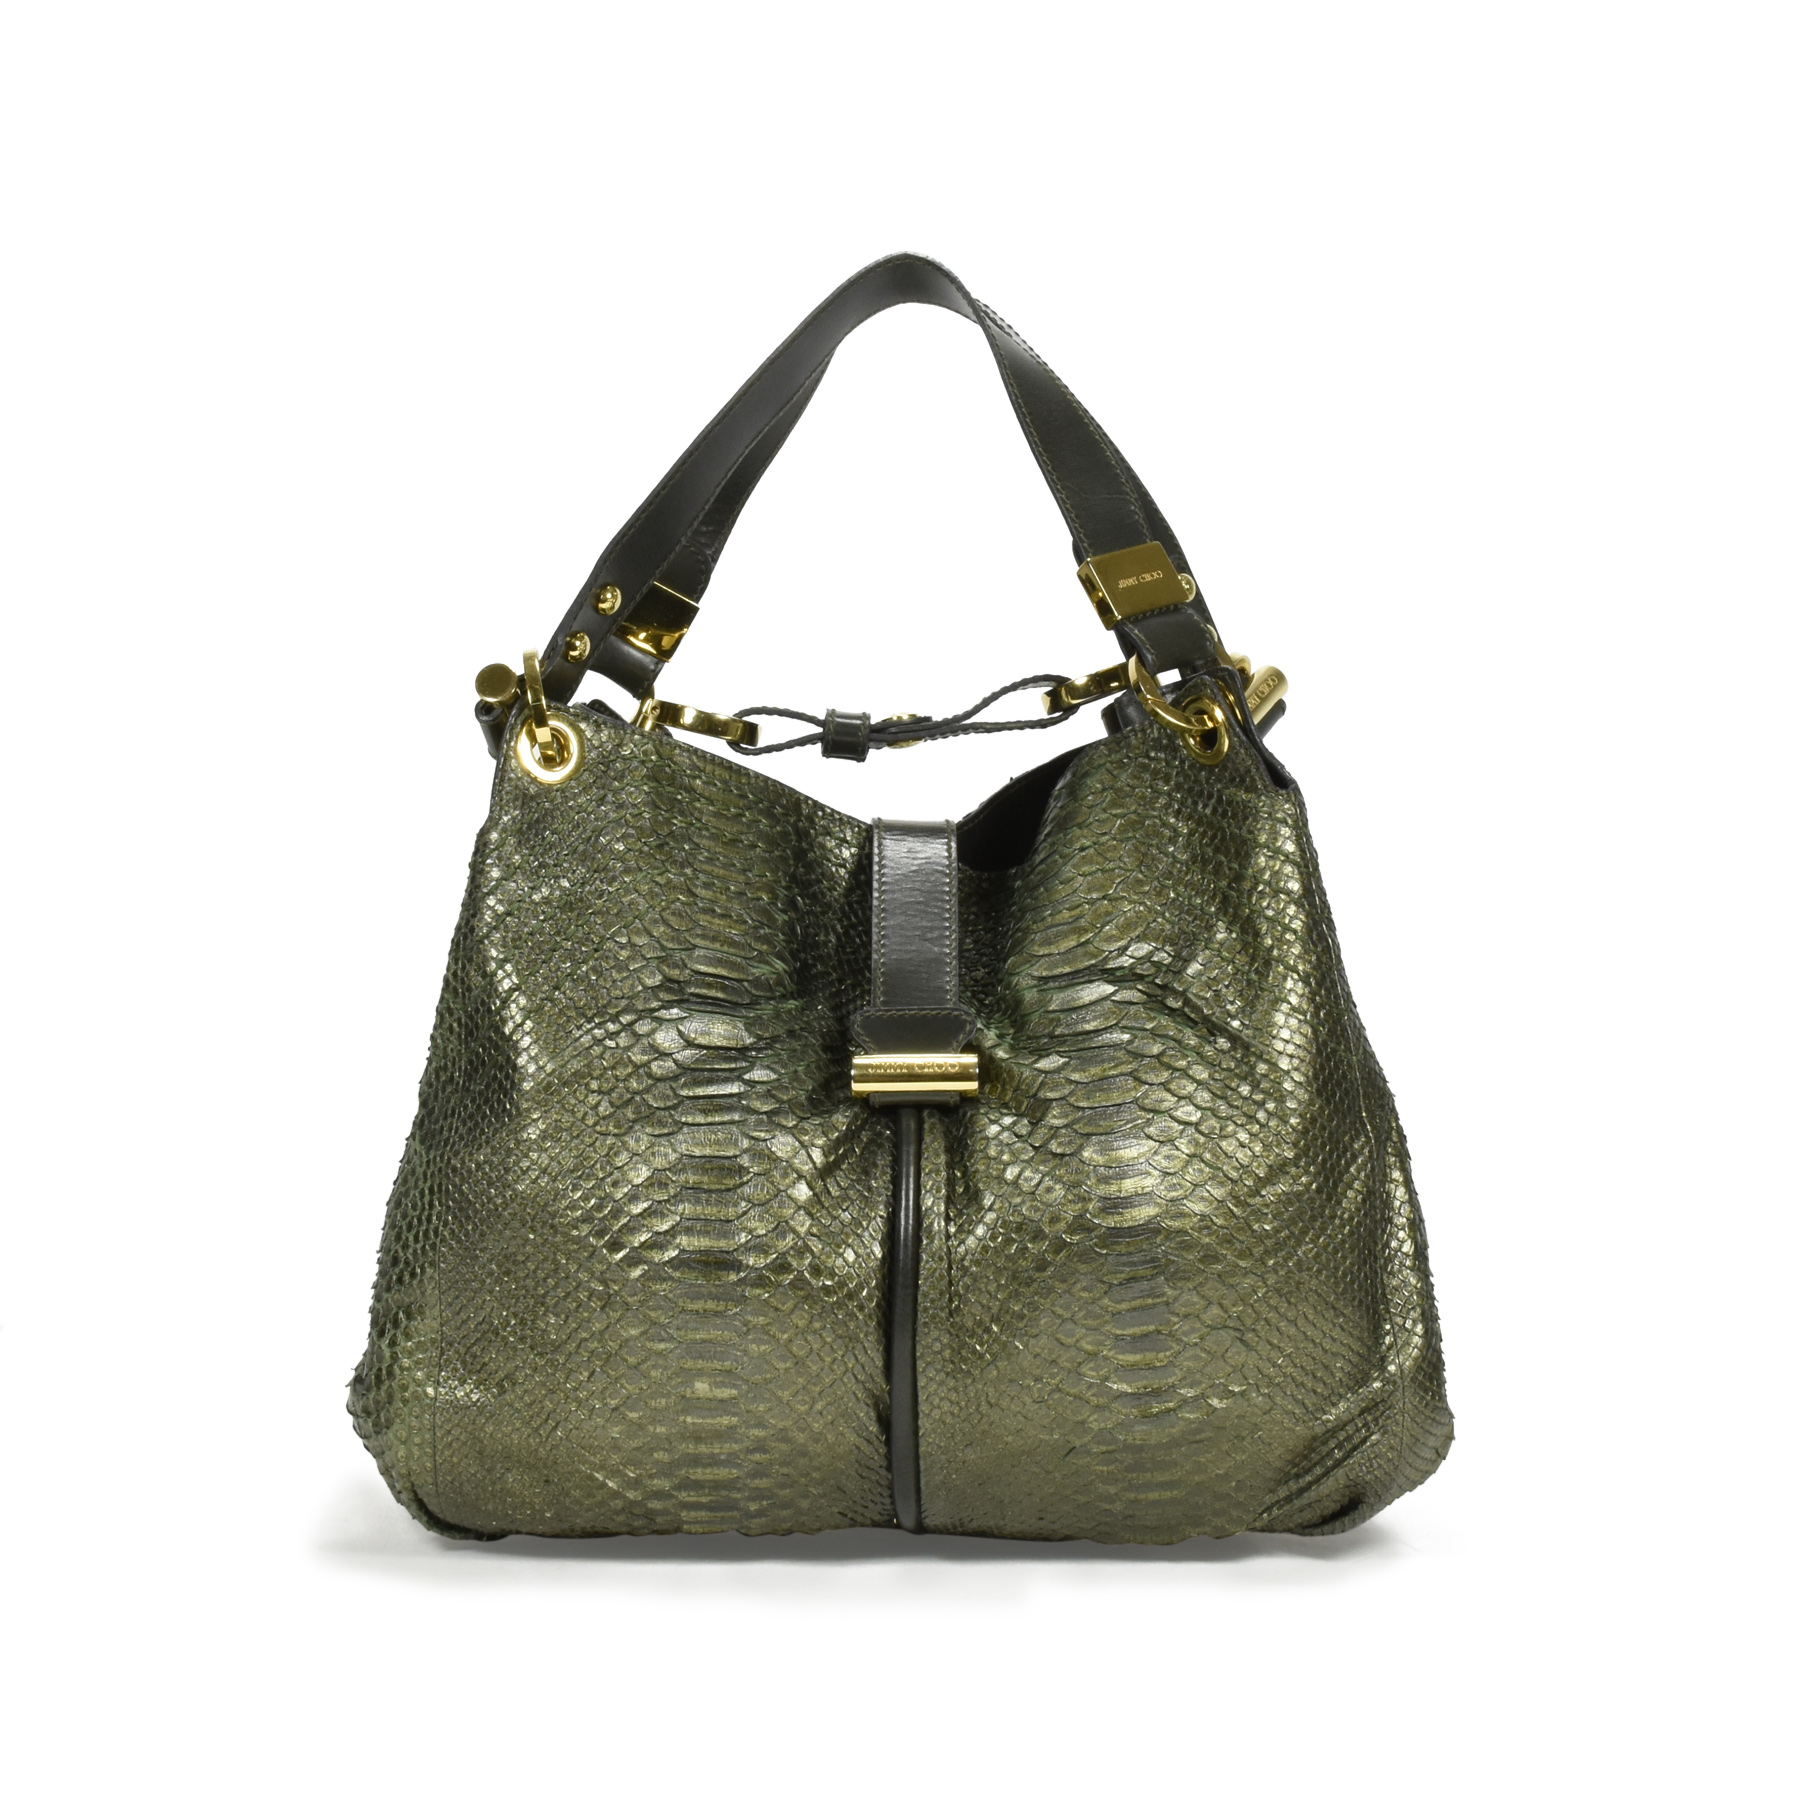 90c2c15b836 Authentic Second Hand Jimmy Choo Alex Python Bag (PSS-355-00014) - THE  FIFTH COLLECTION